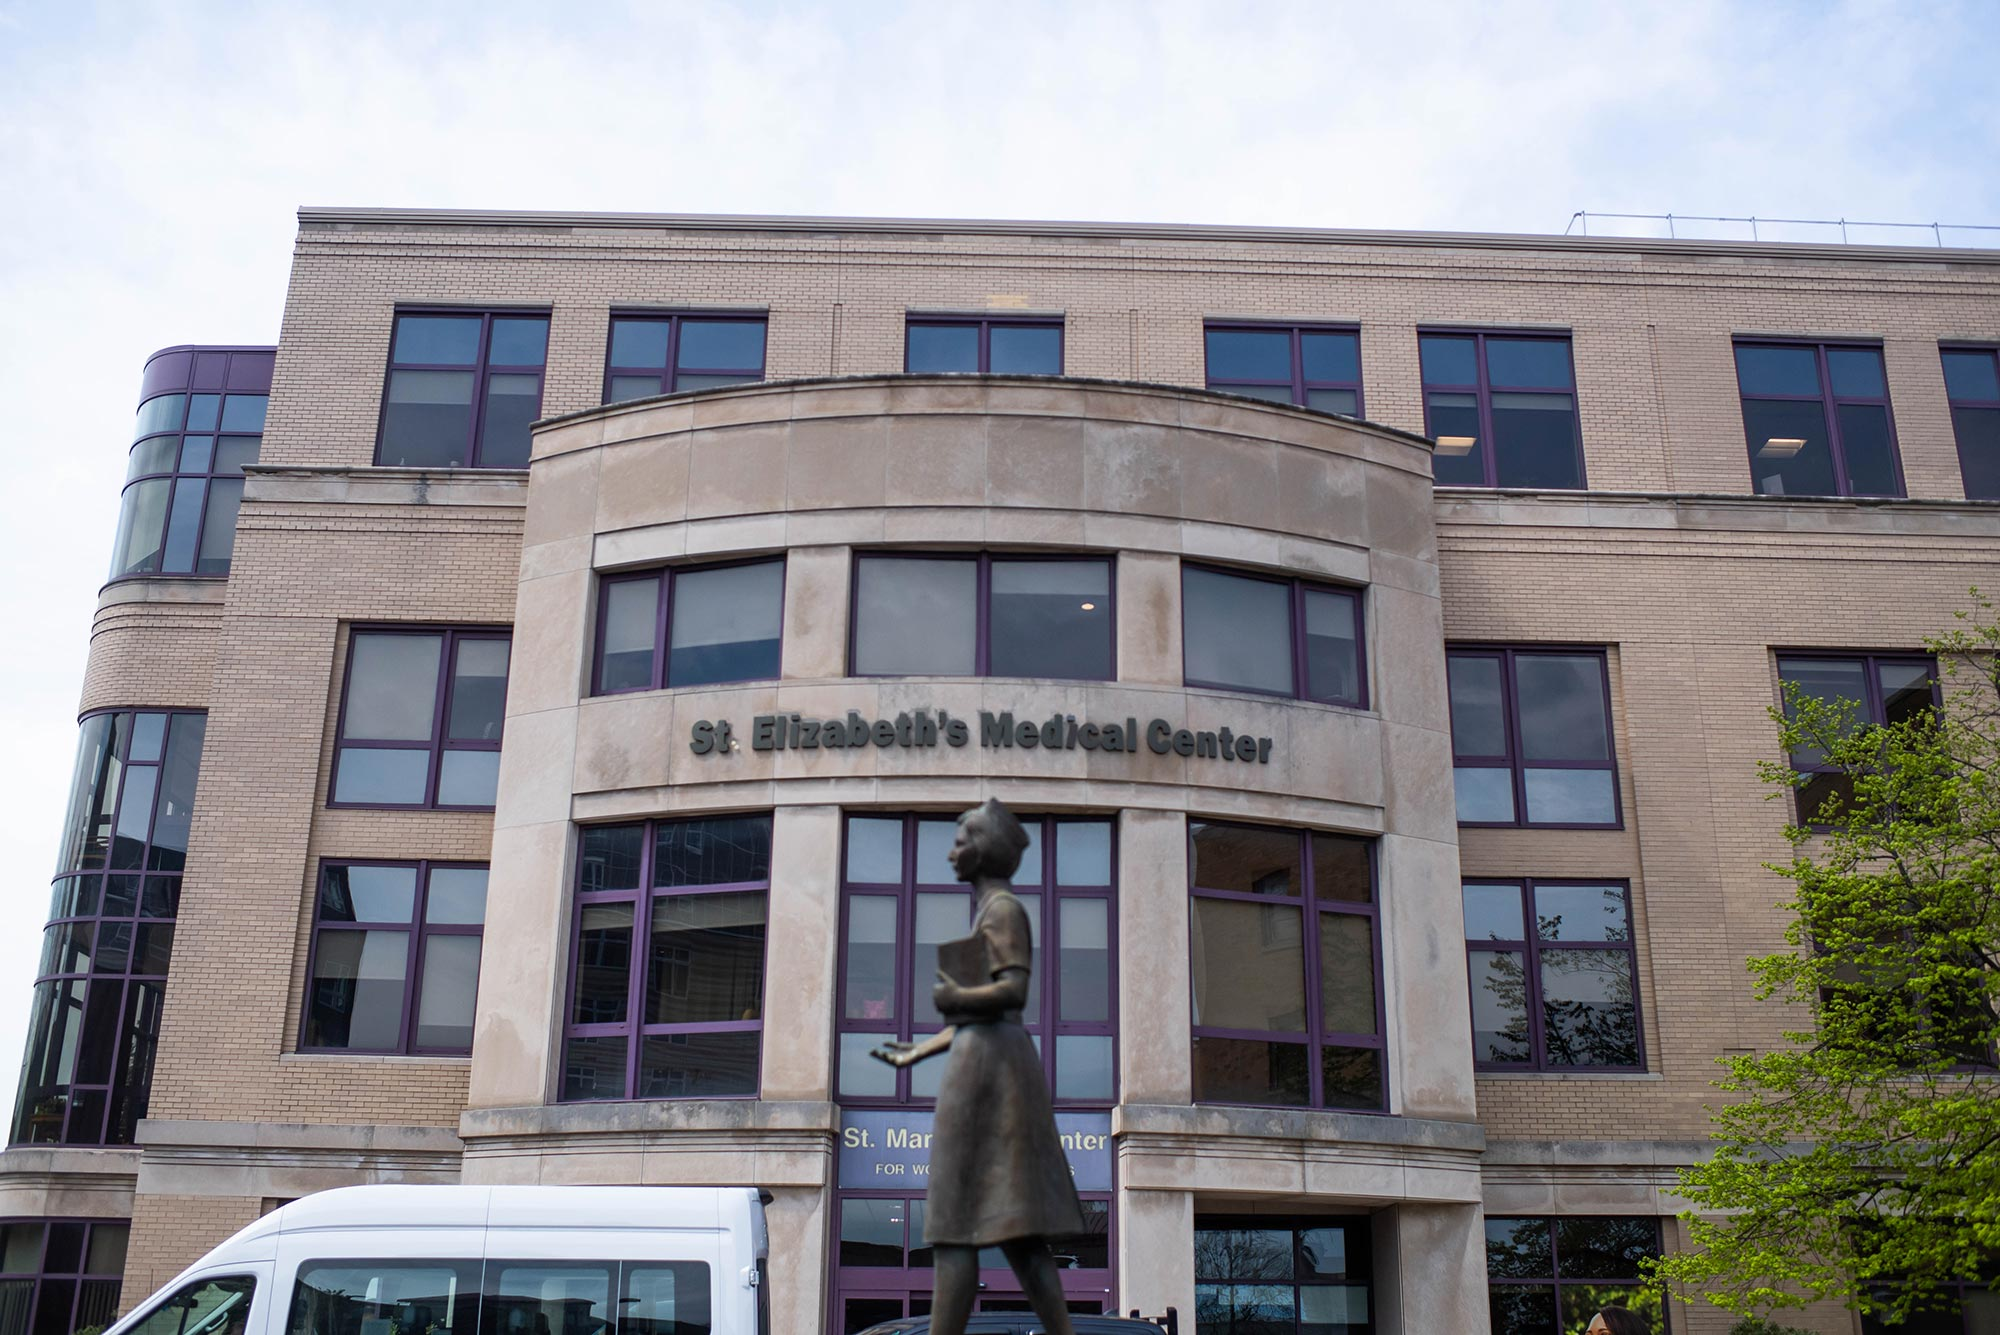 Photo of St. Elizabeth's Medical Center in Brighton, MA. At center, a statue of a woman in bronze is seen.